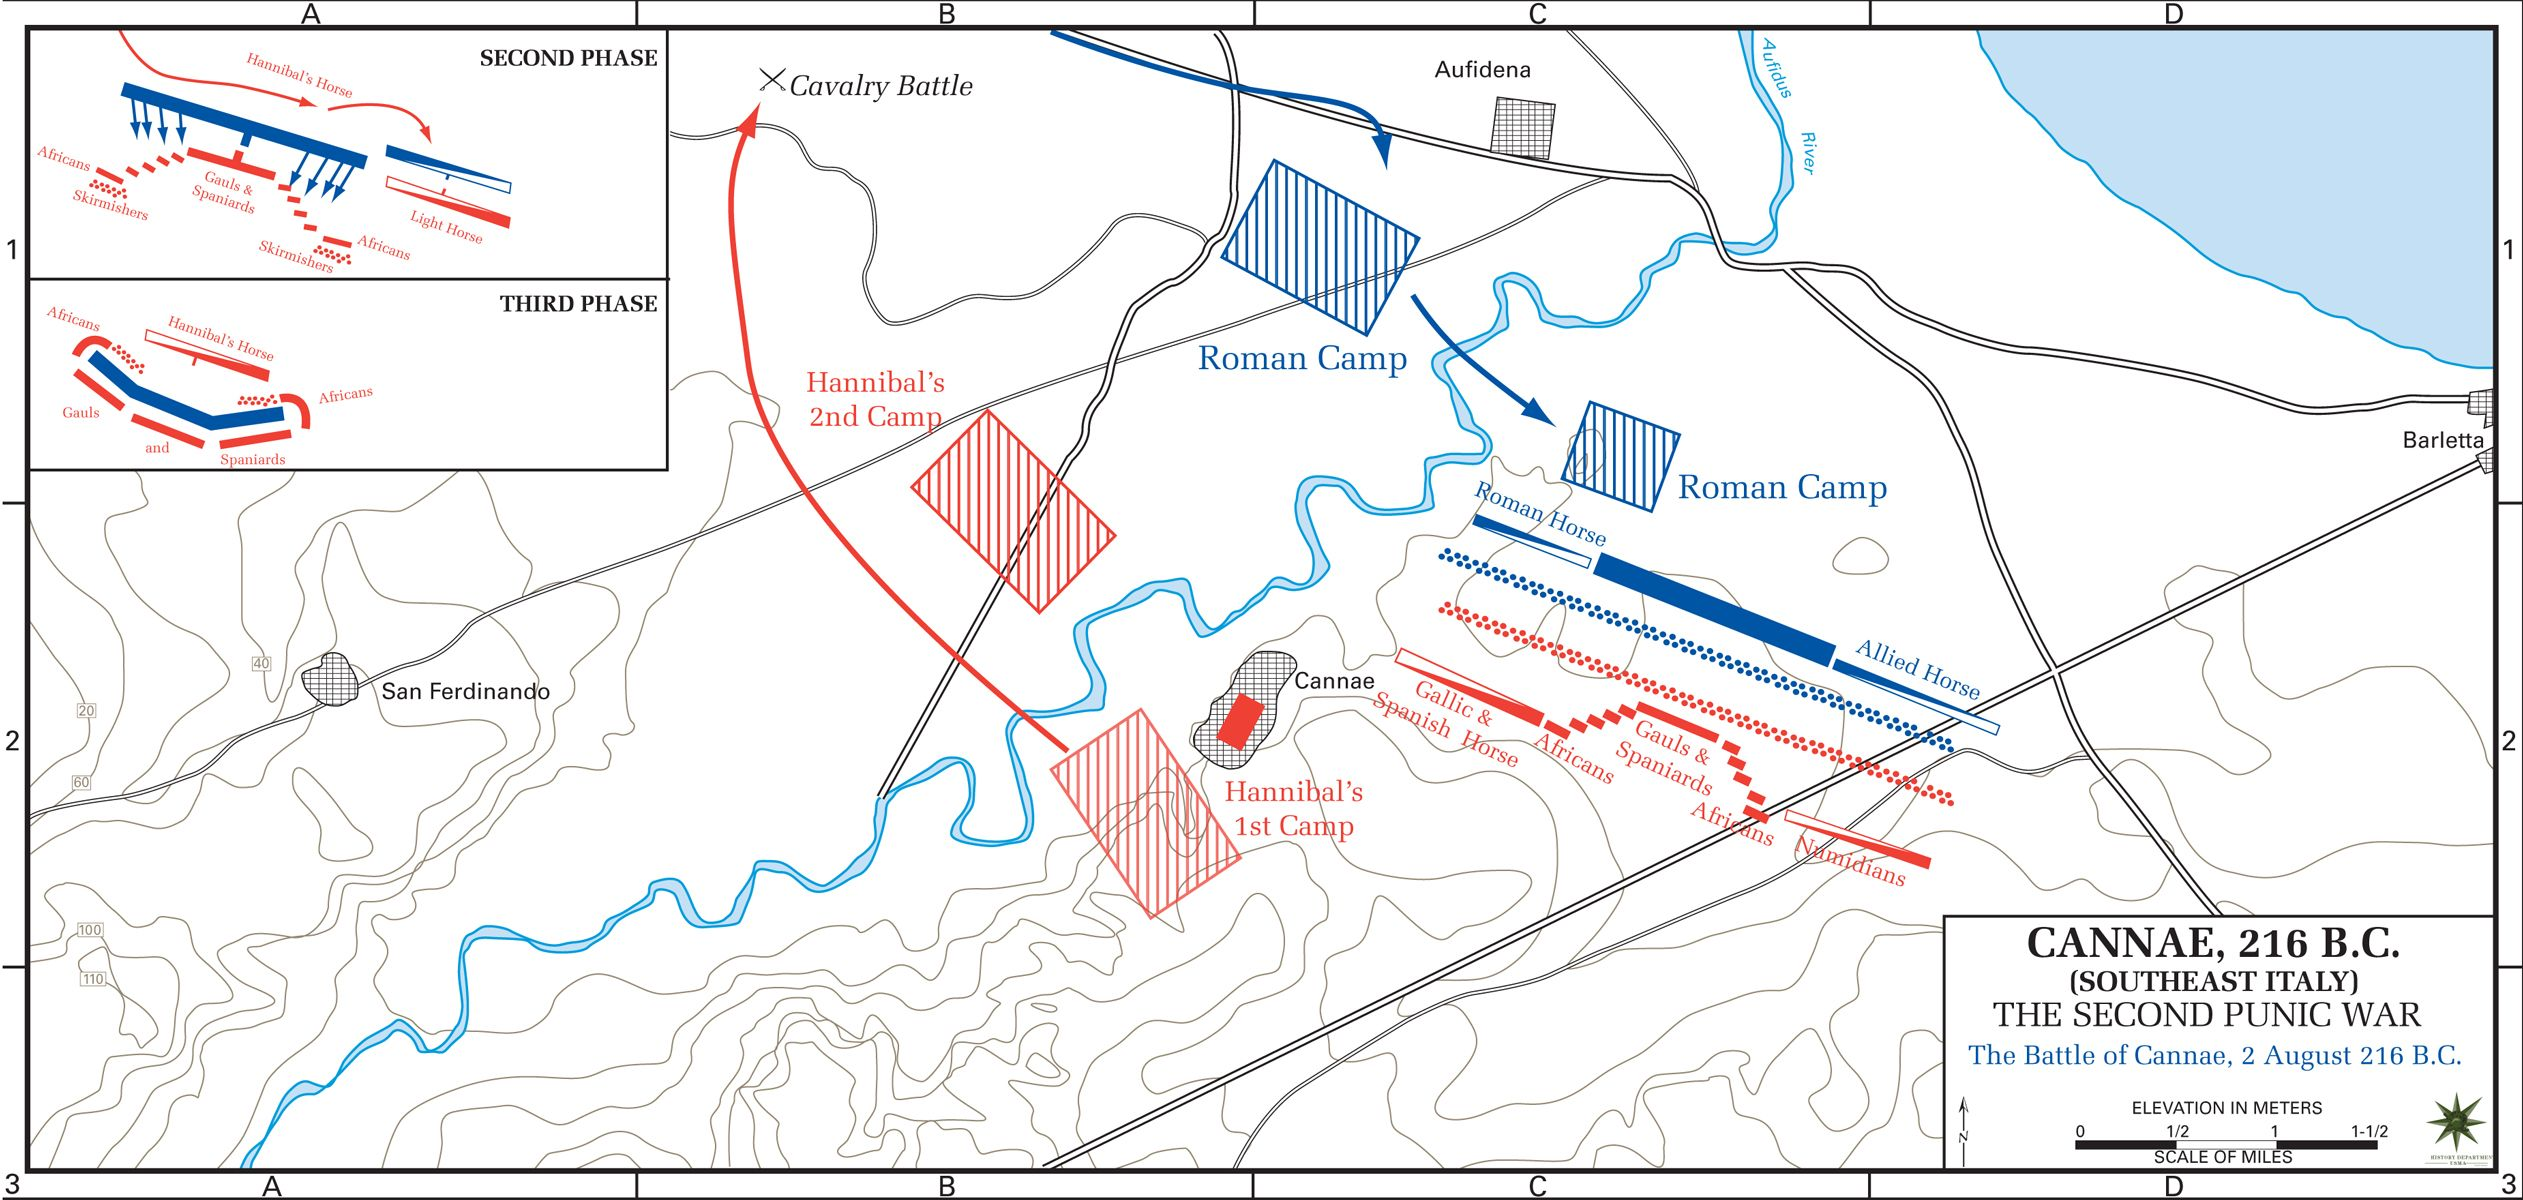 Map of the Battle of Cannae, August 2, 216 BC